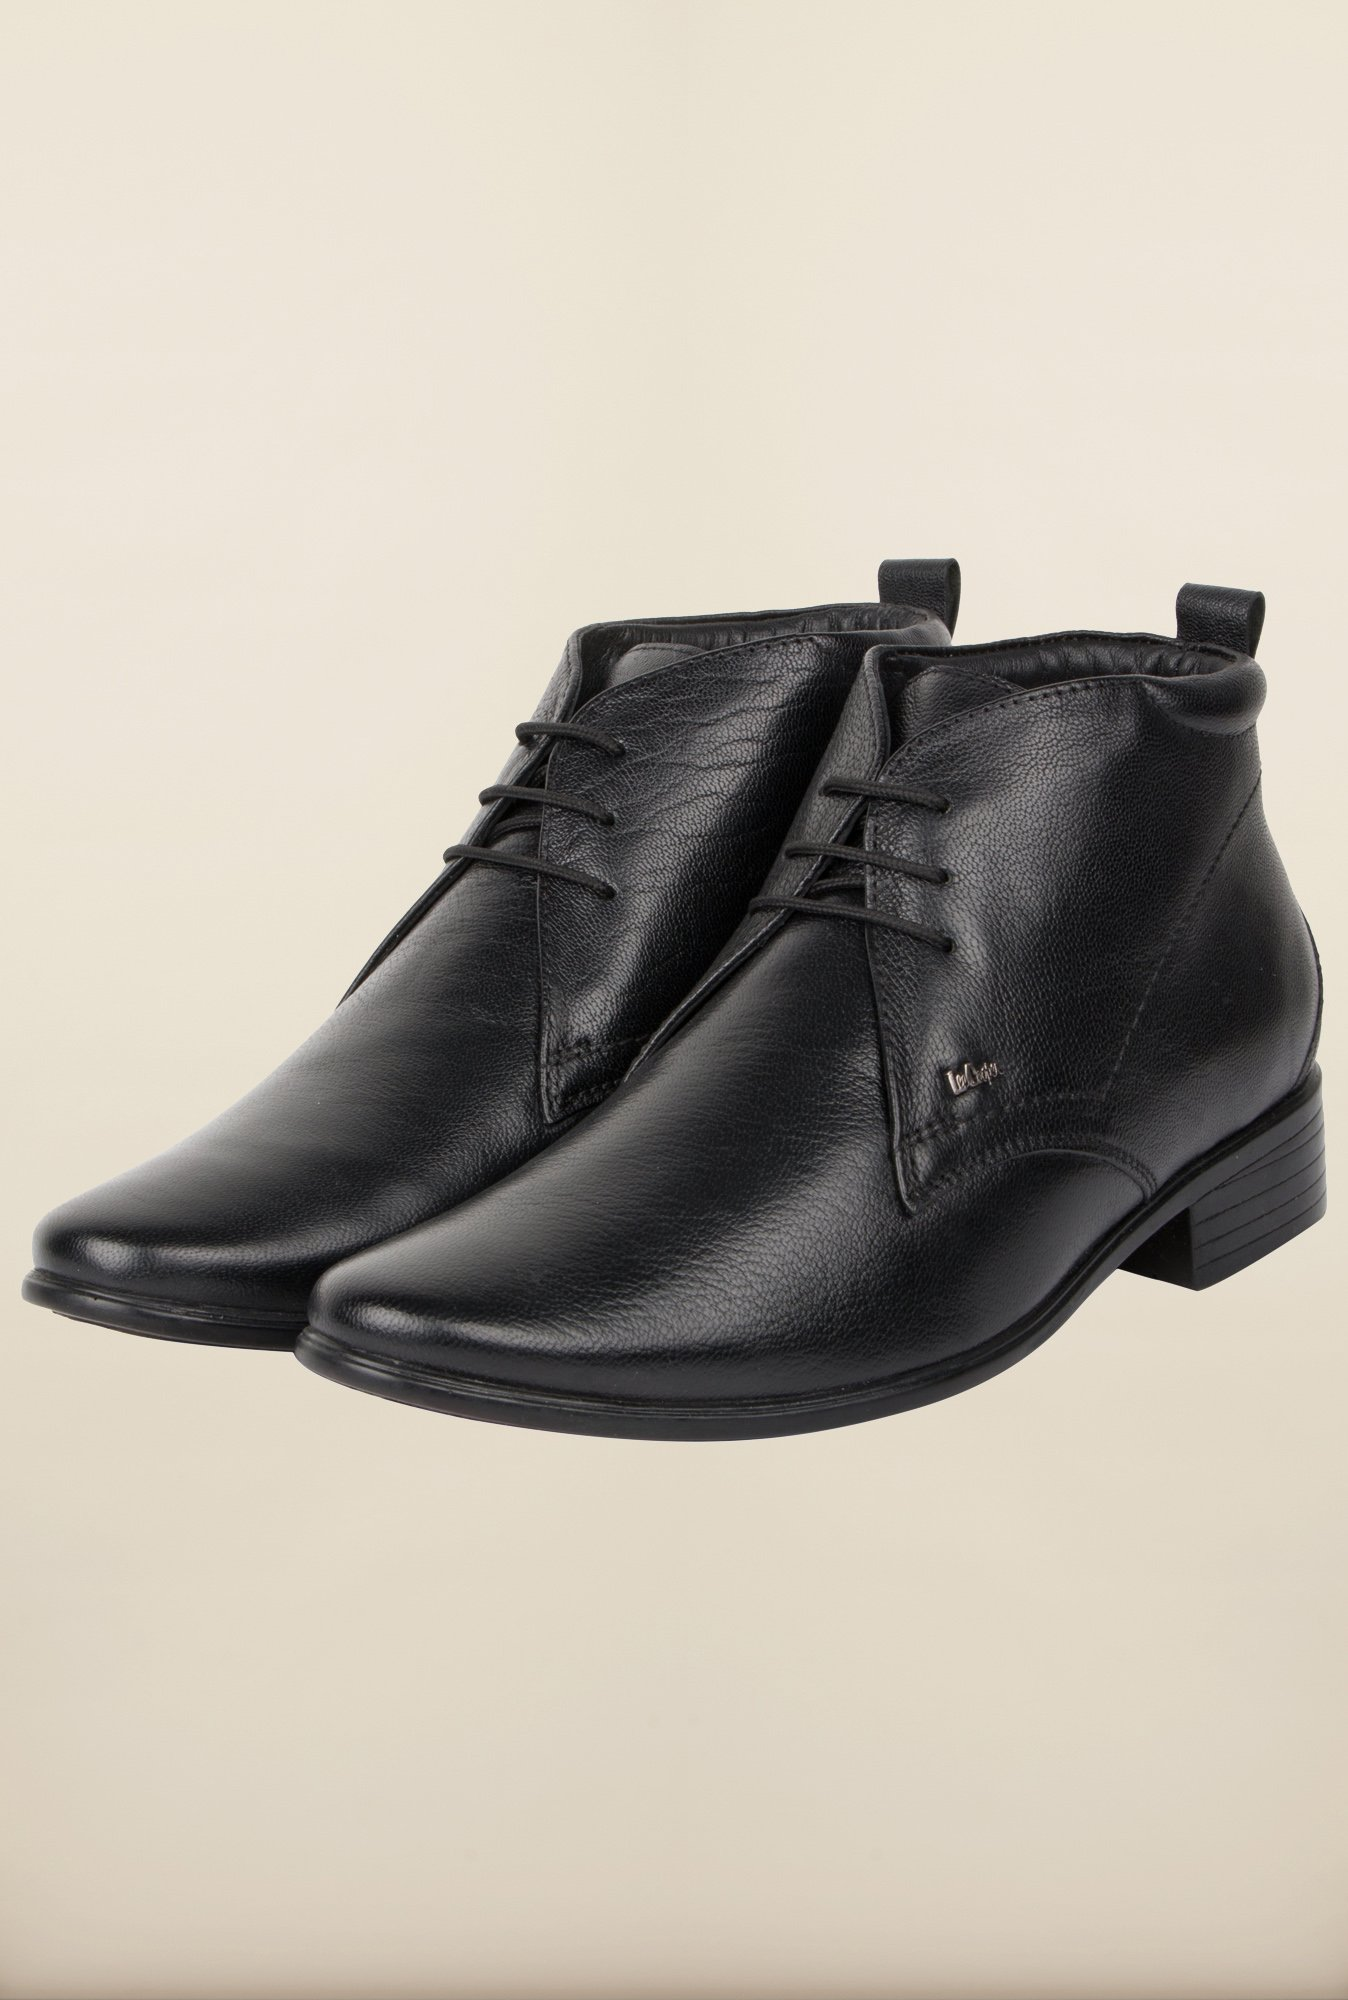 Lee Cooper Black Chukka Formal Shoes